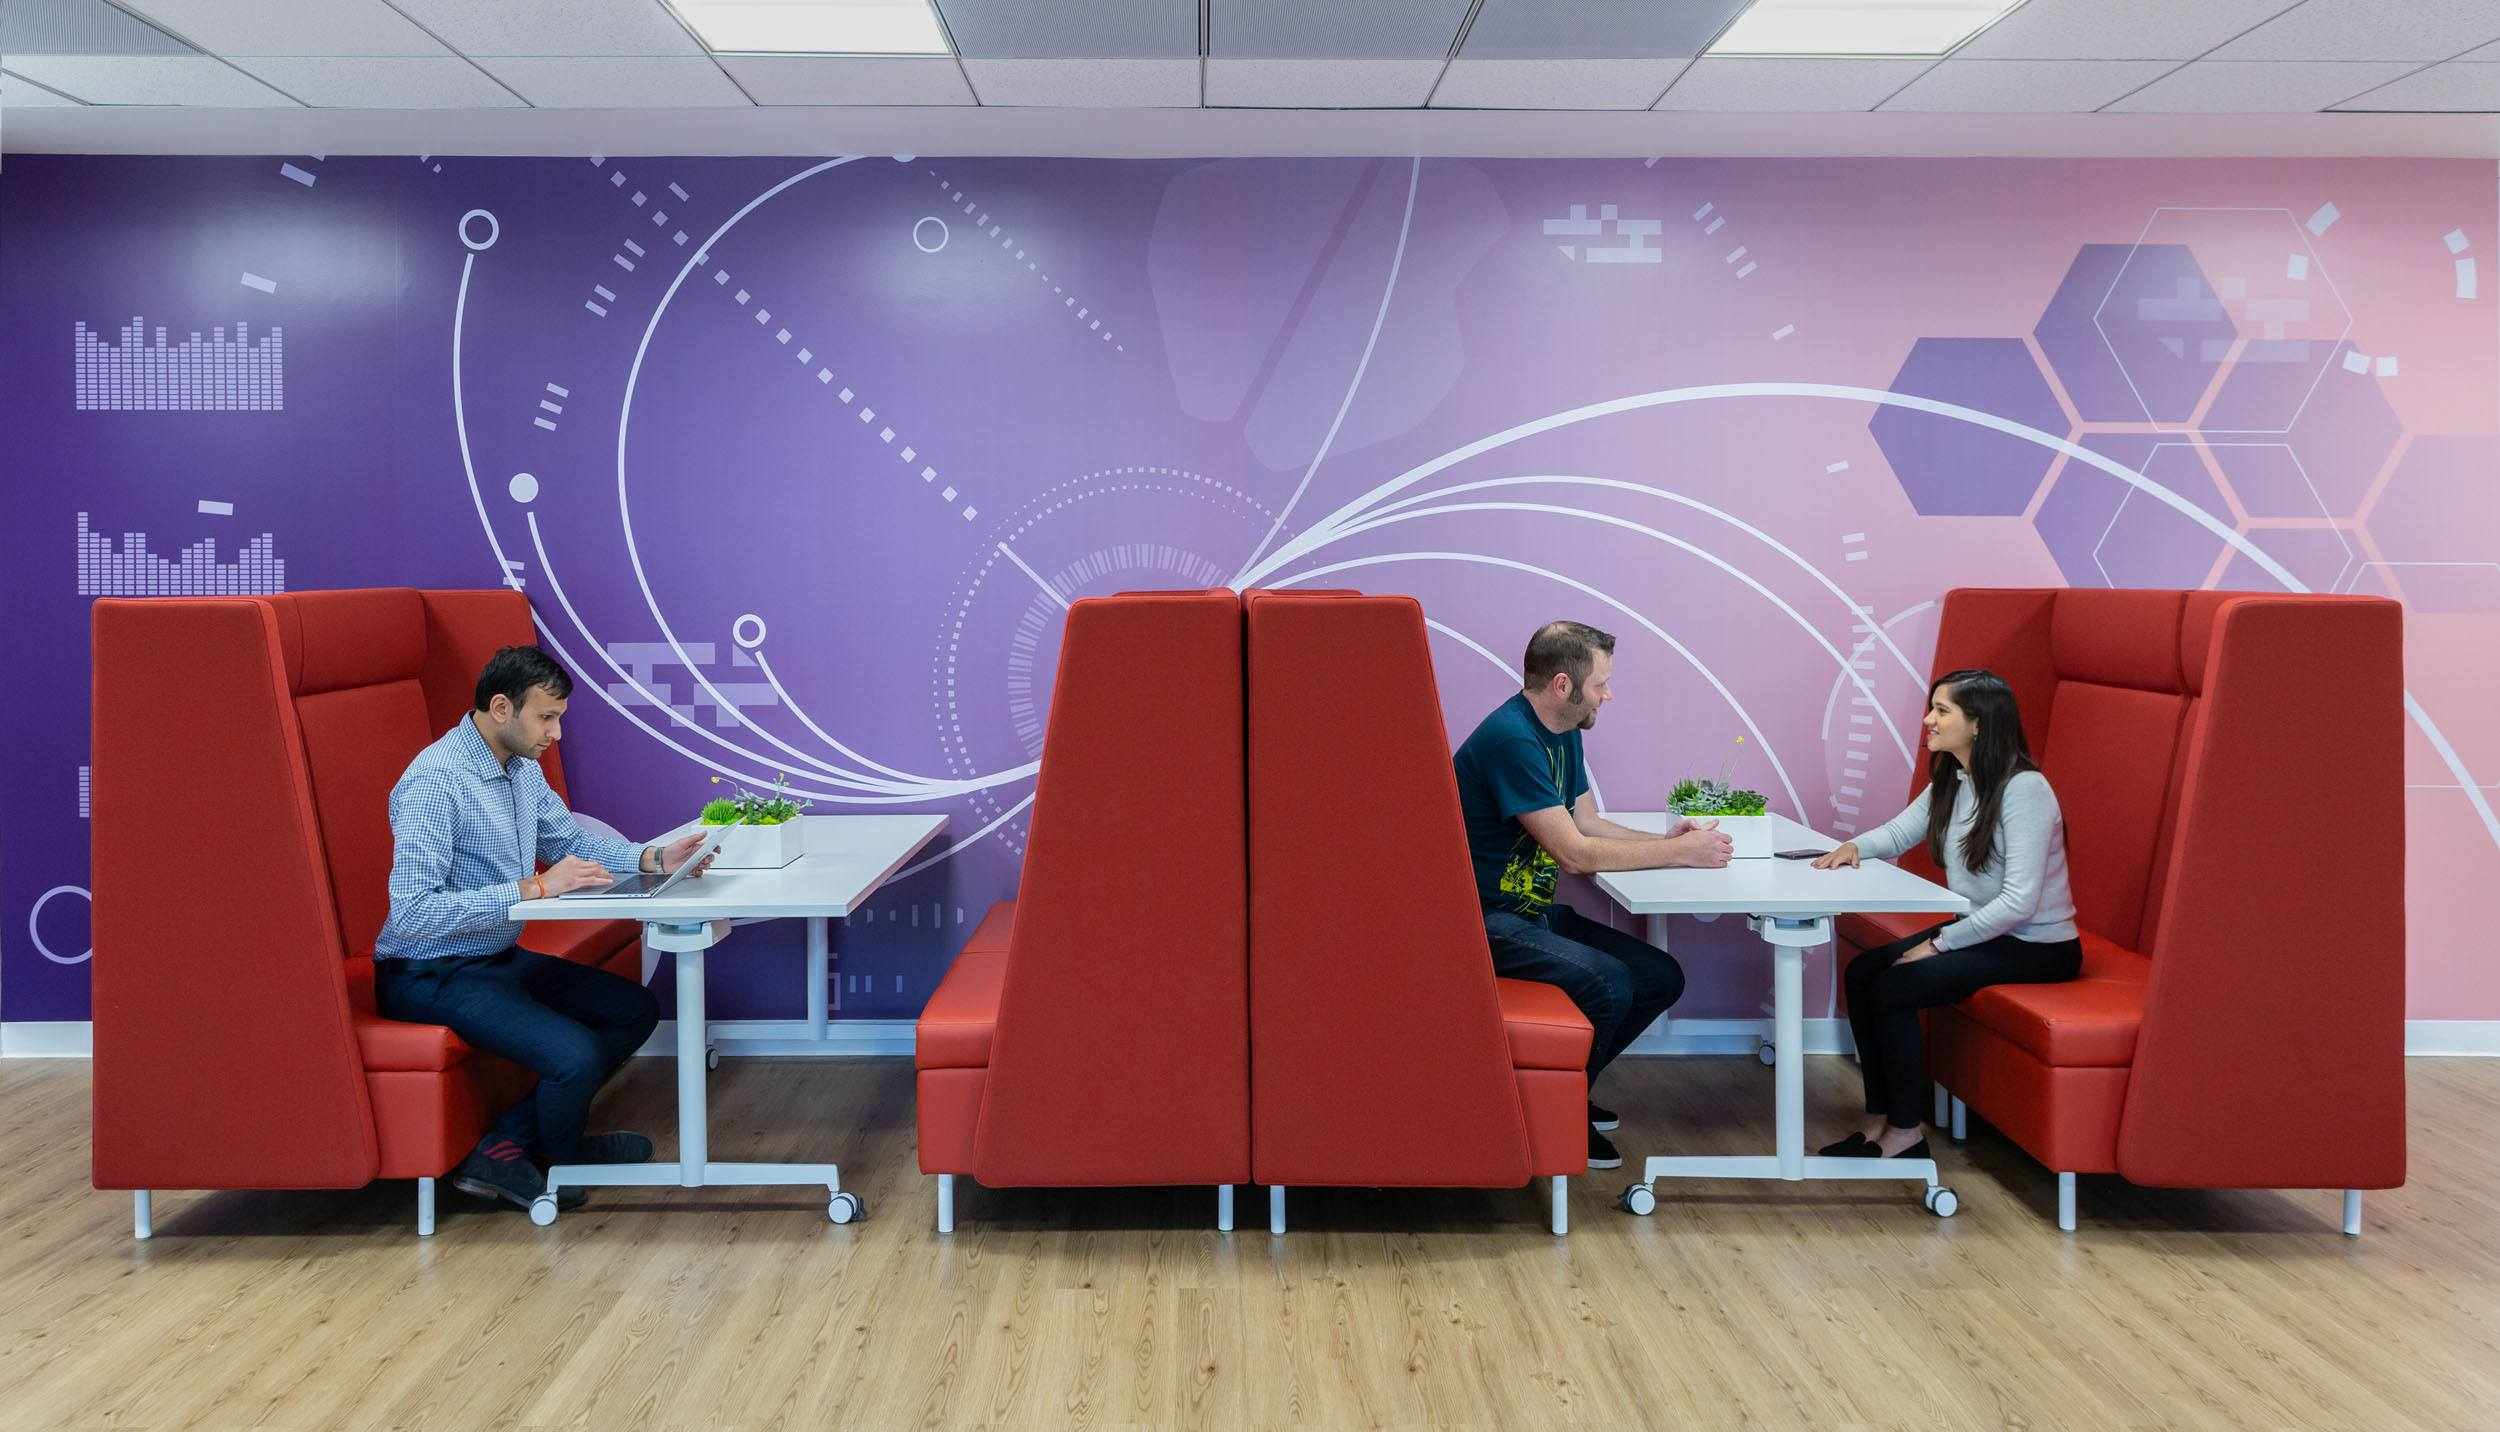 Sitecore offices interior banquette seating